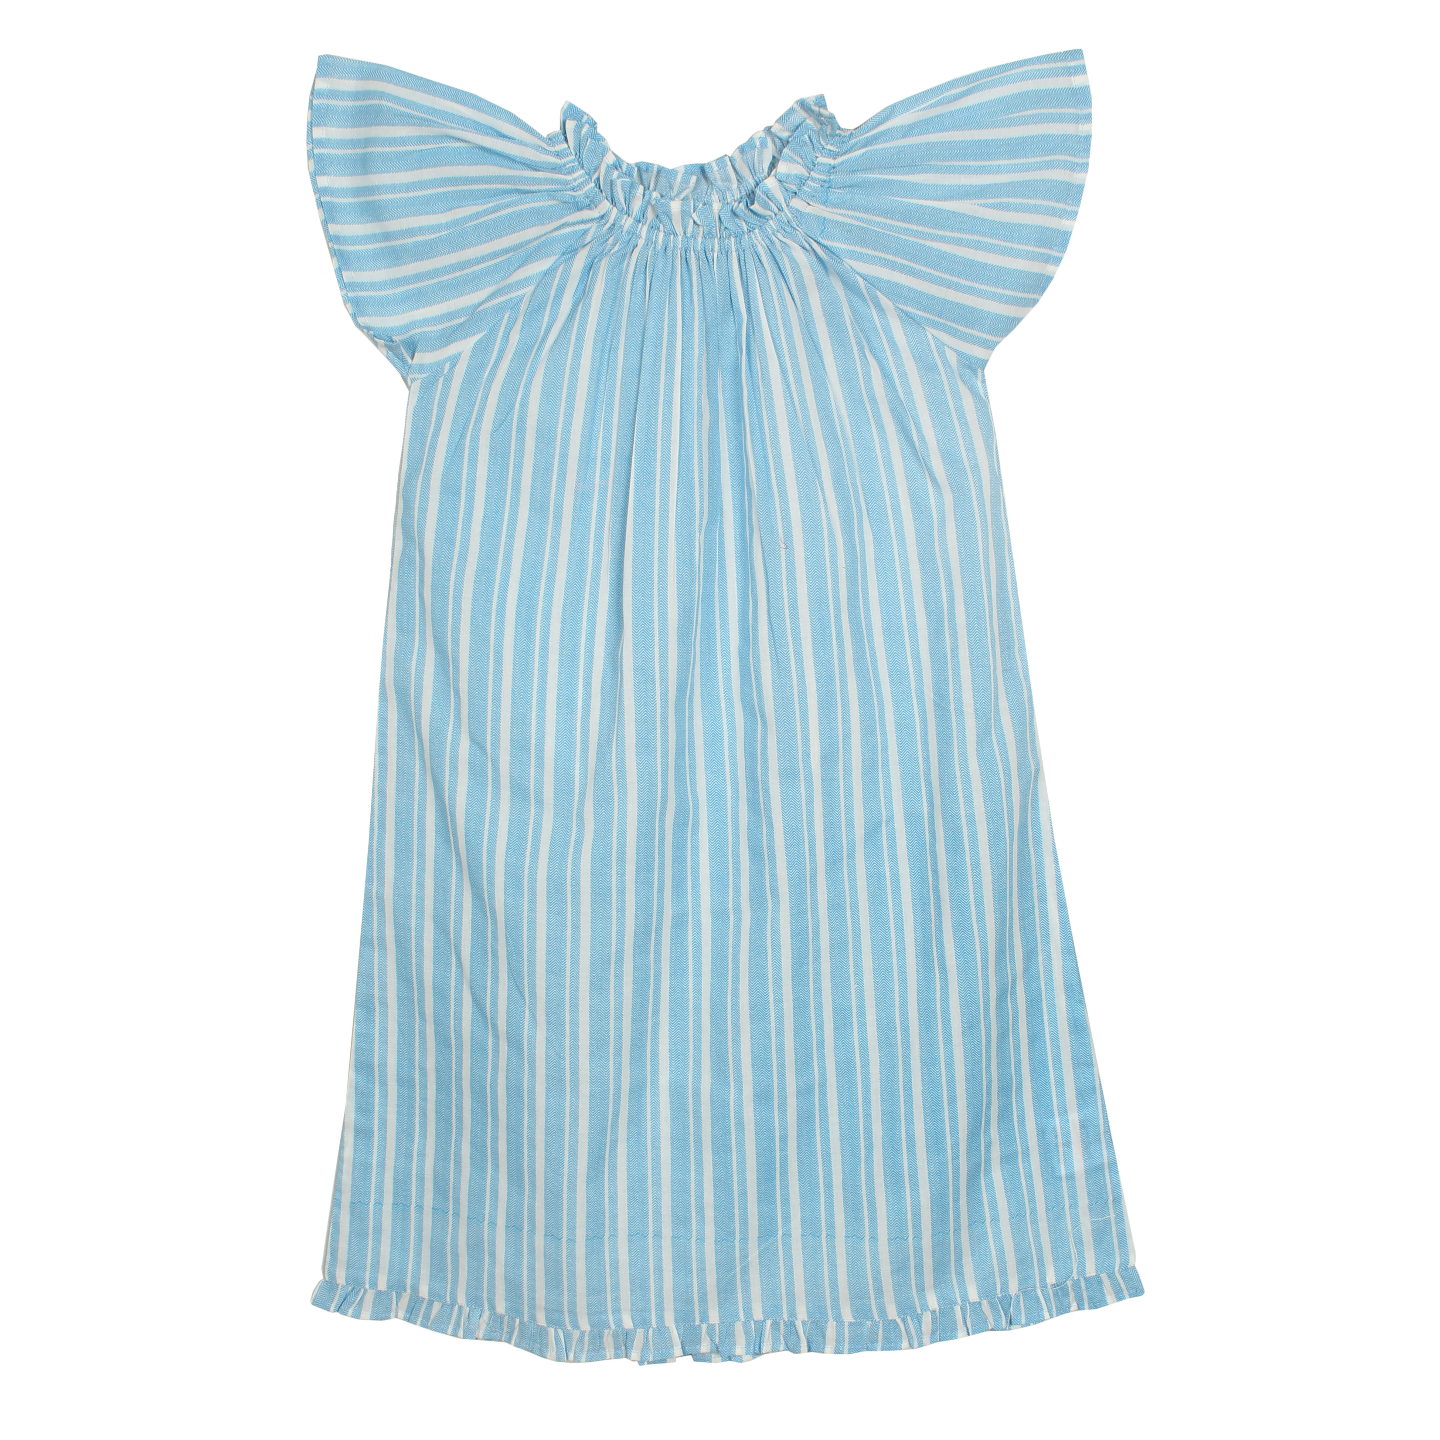 French blue night dress